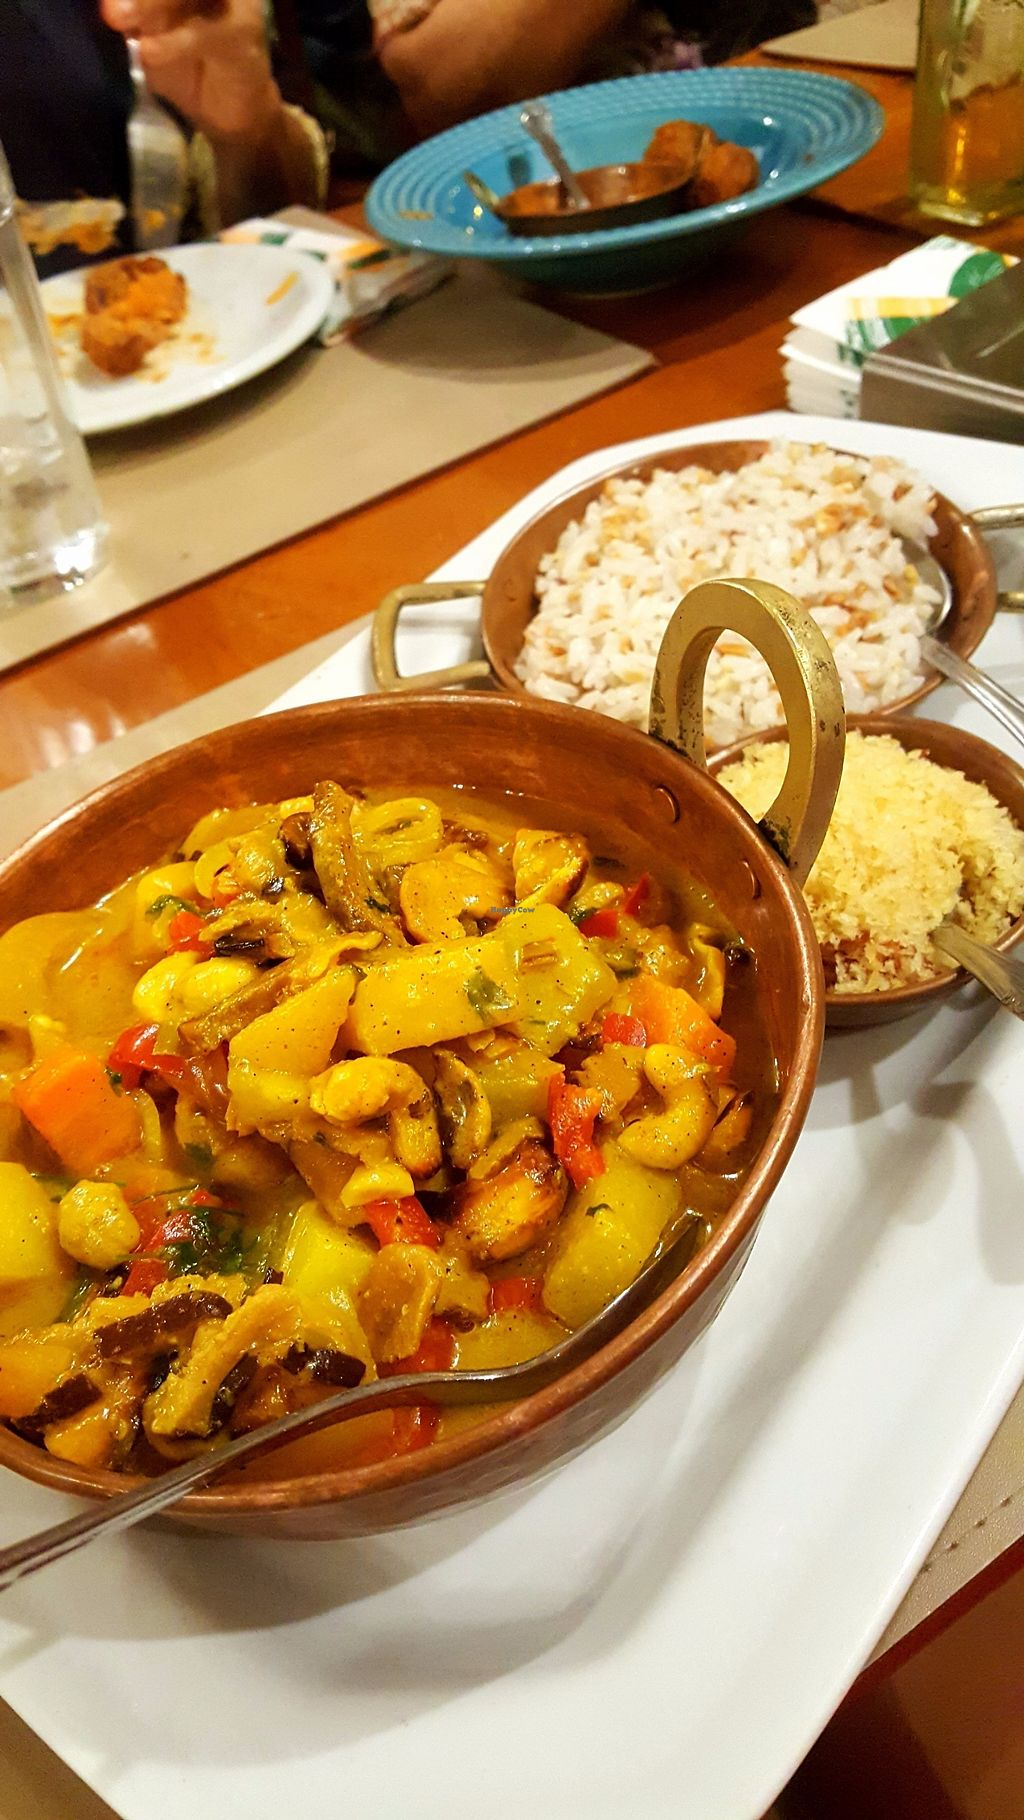 "Photo of Cacimba Bistro  by <a href=""/members/profile/sarahssoares"">sarahssoares</a> <br/>Vegan moqueca with coconut rice and farofa <br/> September 19, 2017  - <a href='/contact/abuse/image/101044/306044'>Report</a>"